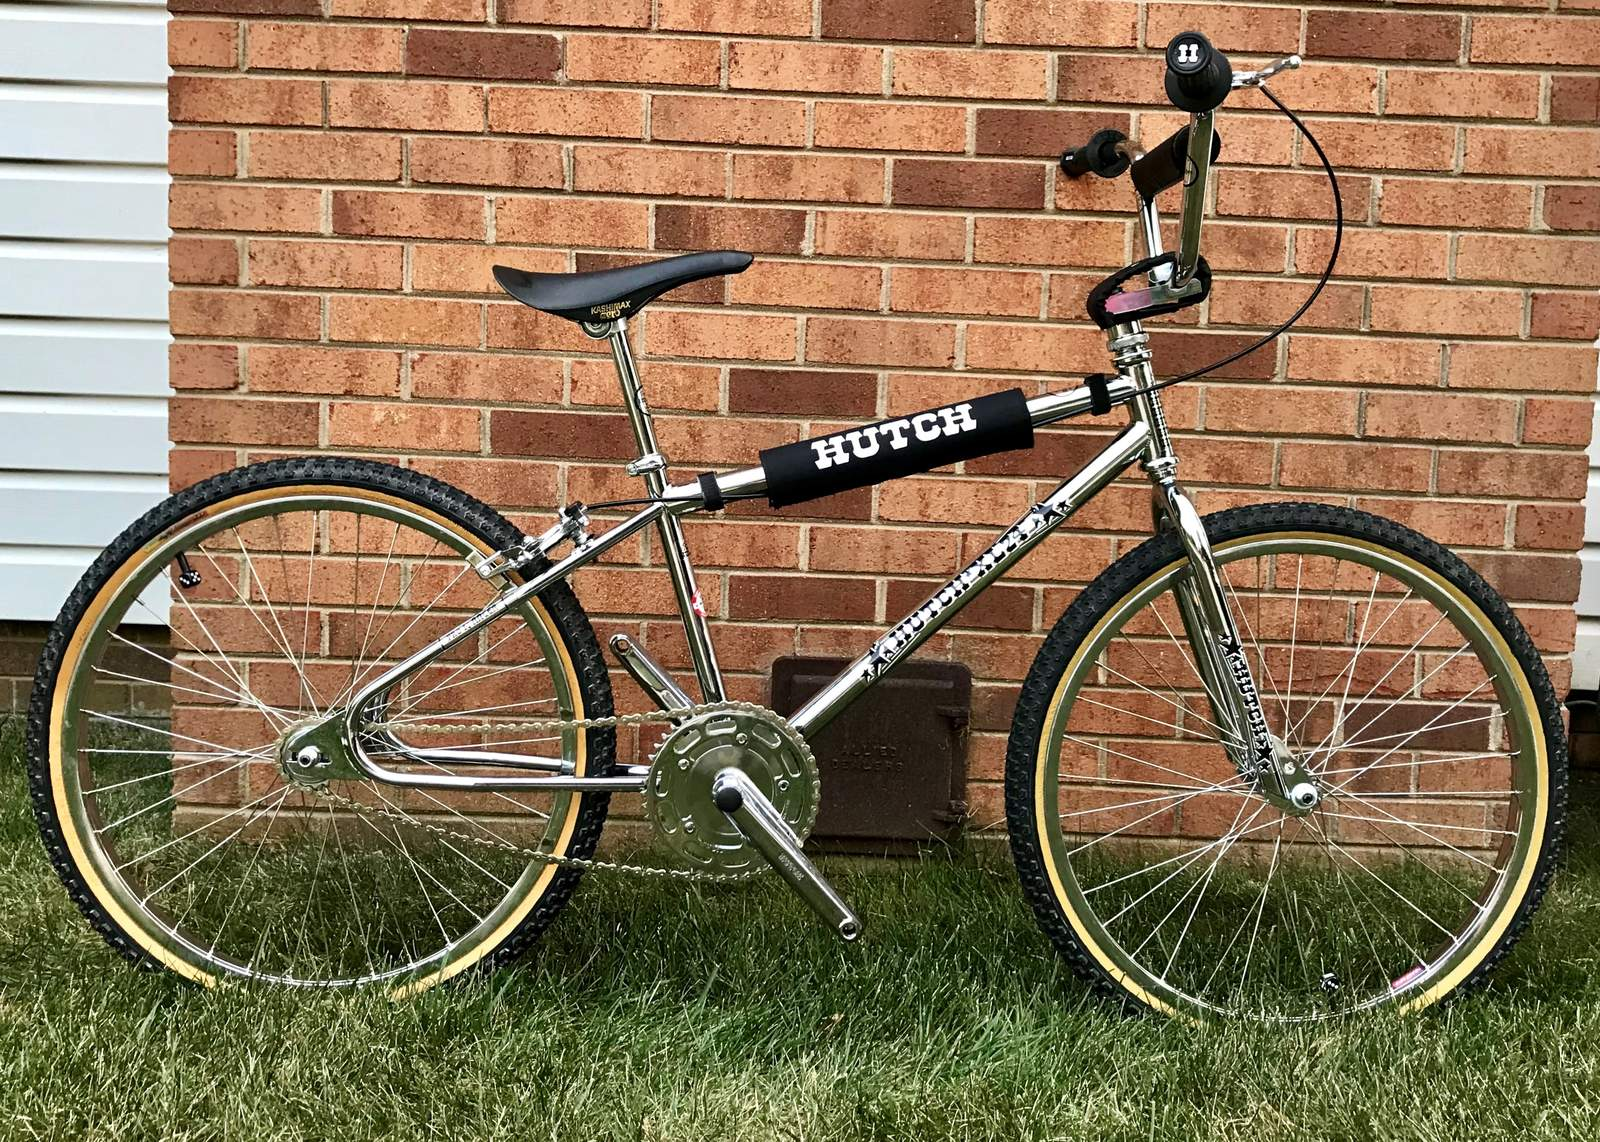 http://uploads.bmxmuseum.com/user-images/5353/hutchxl24finished5b97ae74b3.jpg